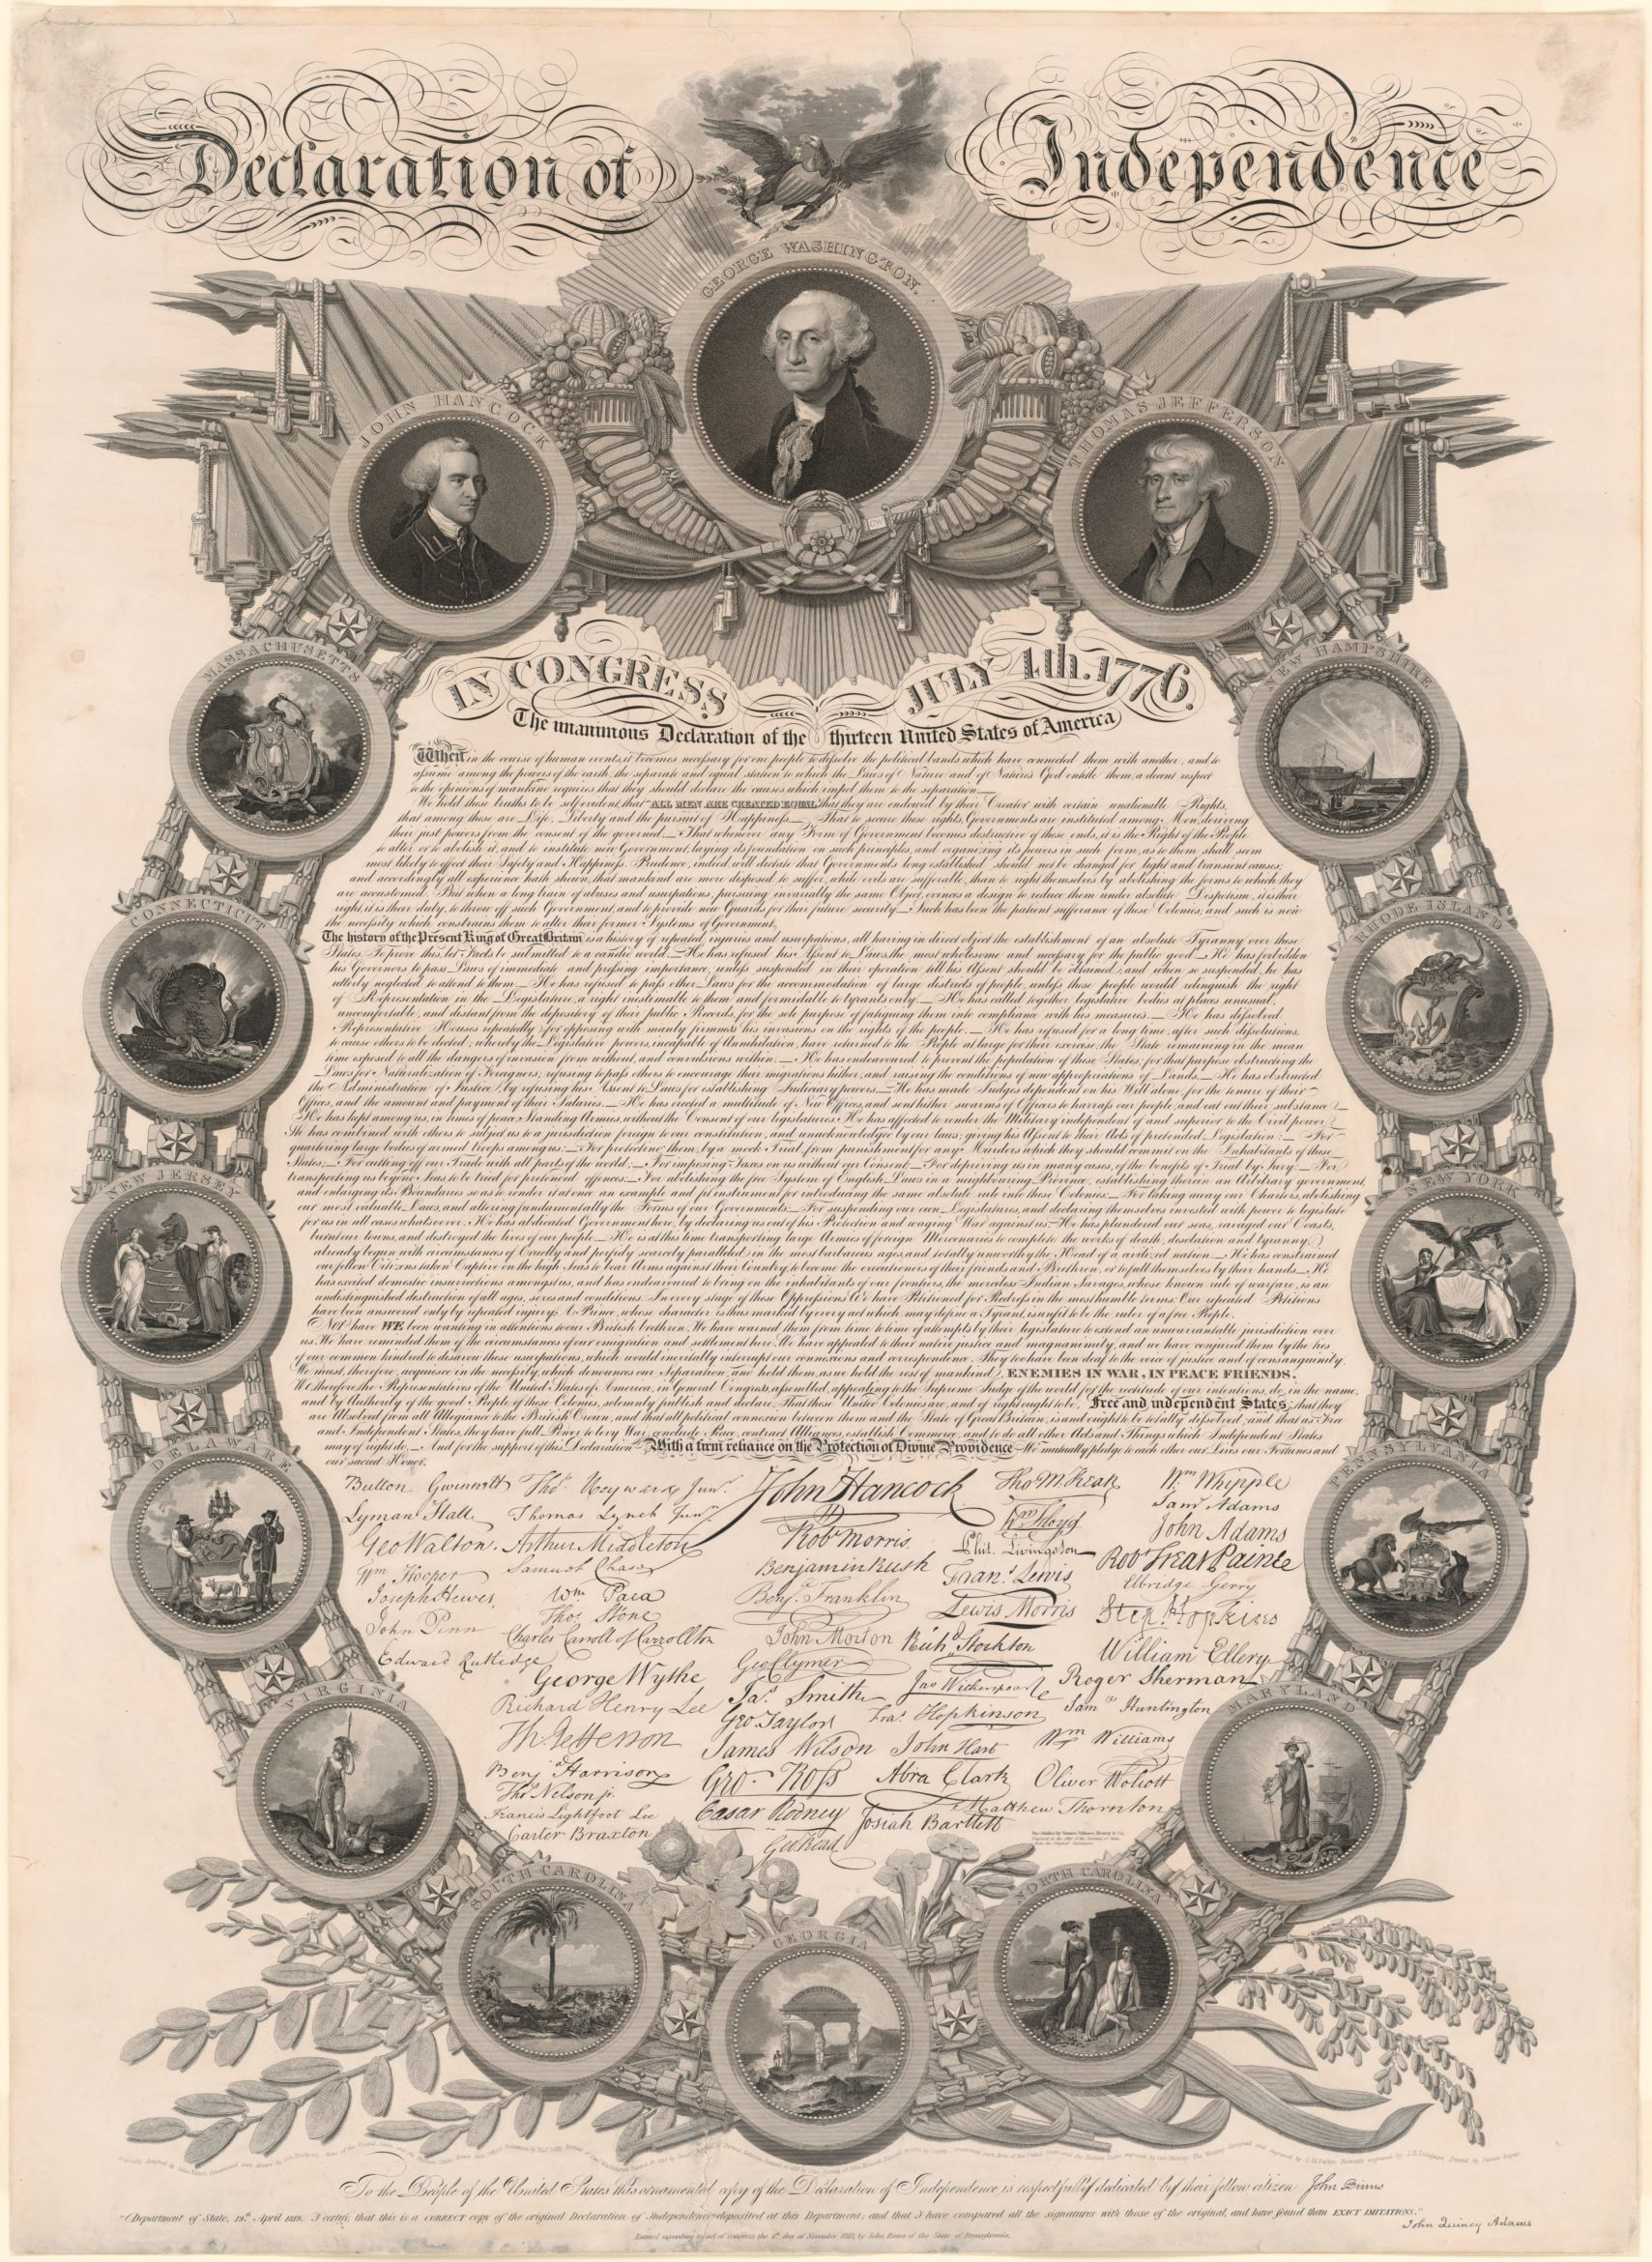 Misc (Declaration of Independence)